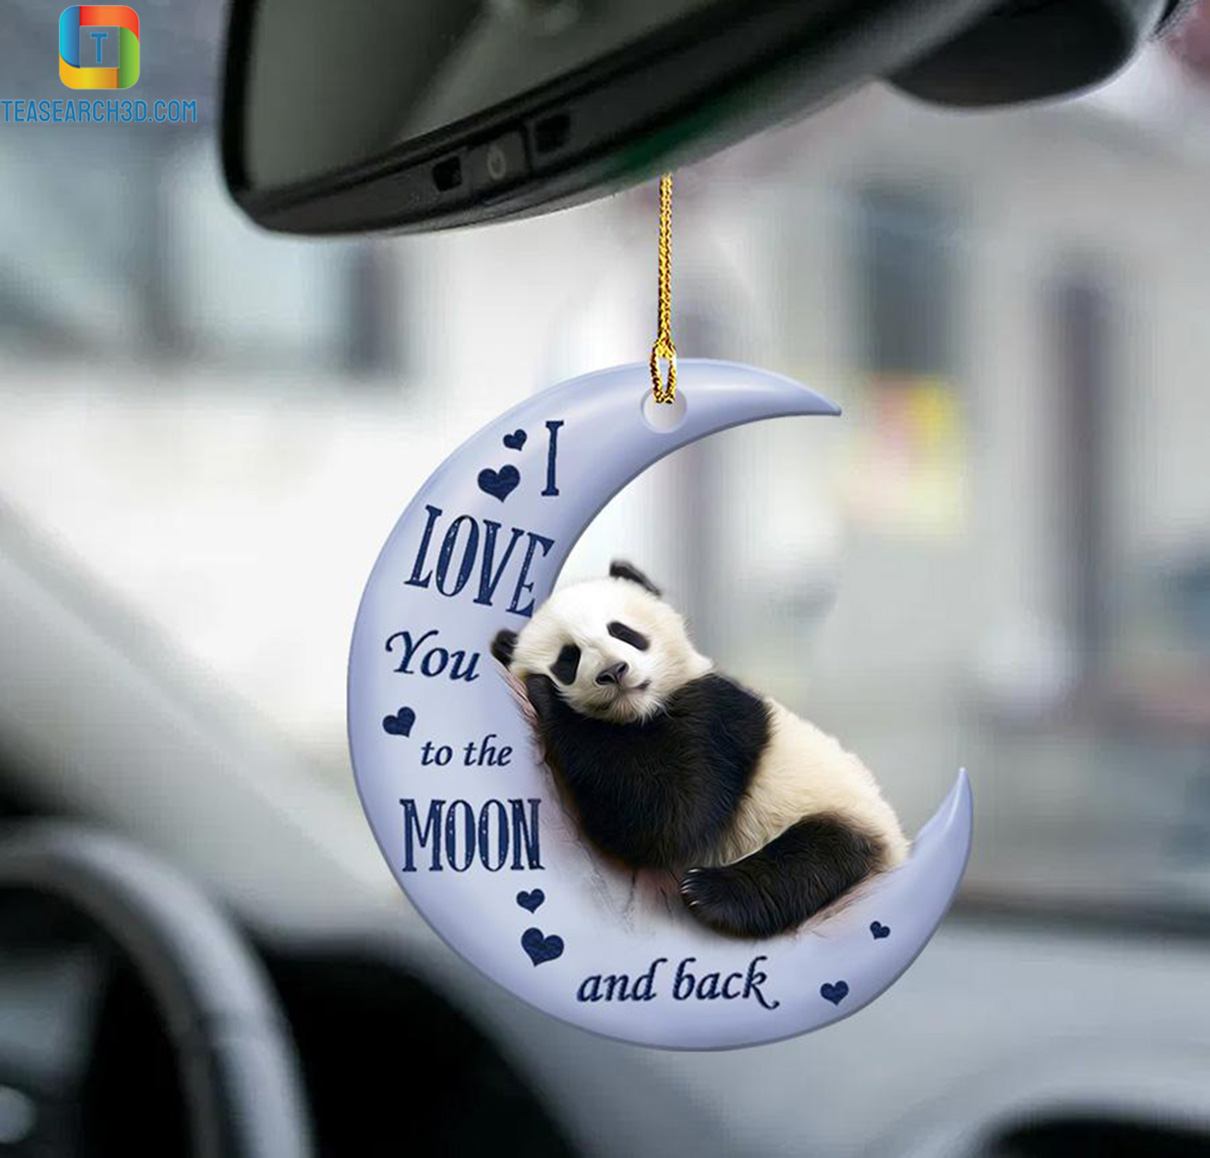 Panda I love you to the moon and back car hanging ornament 1